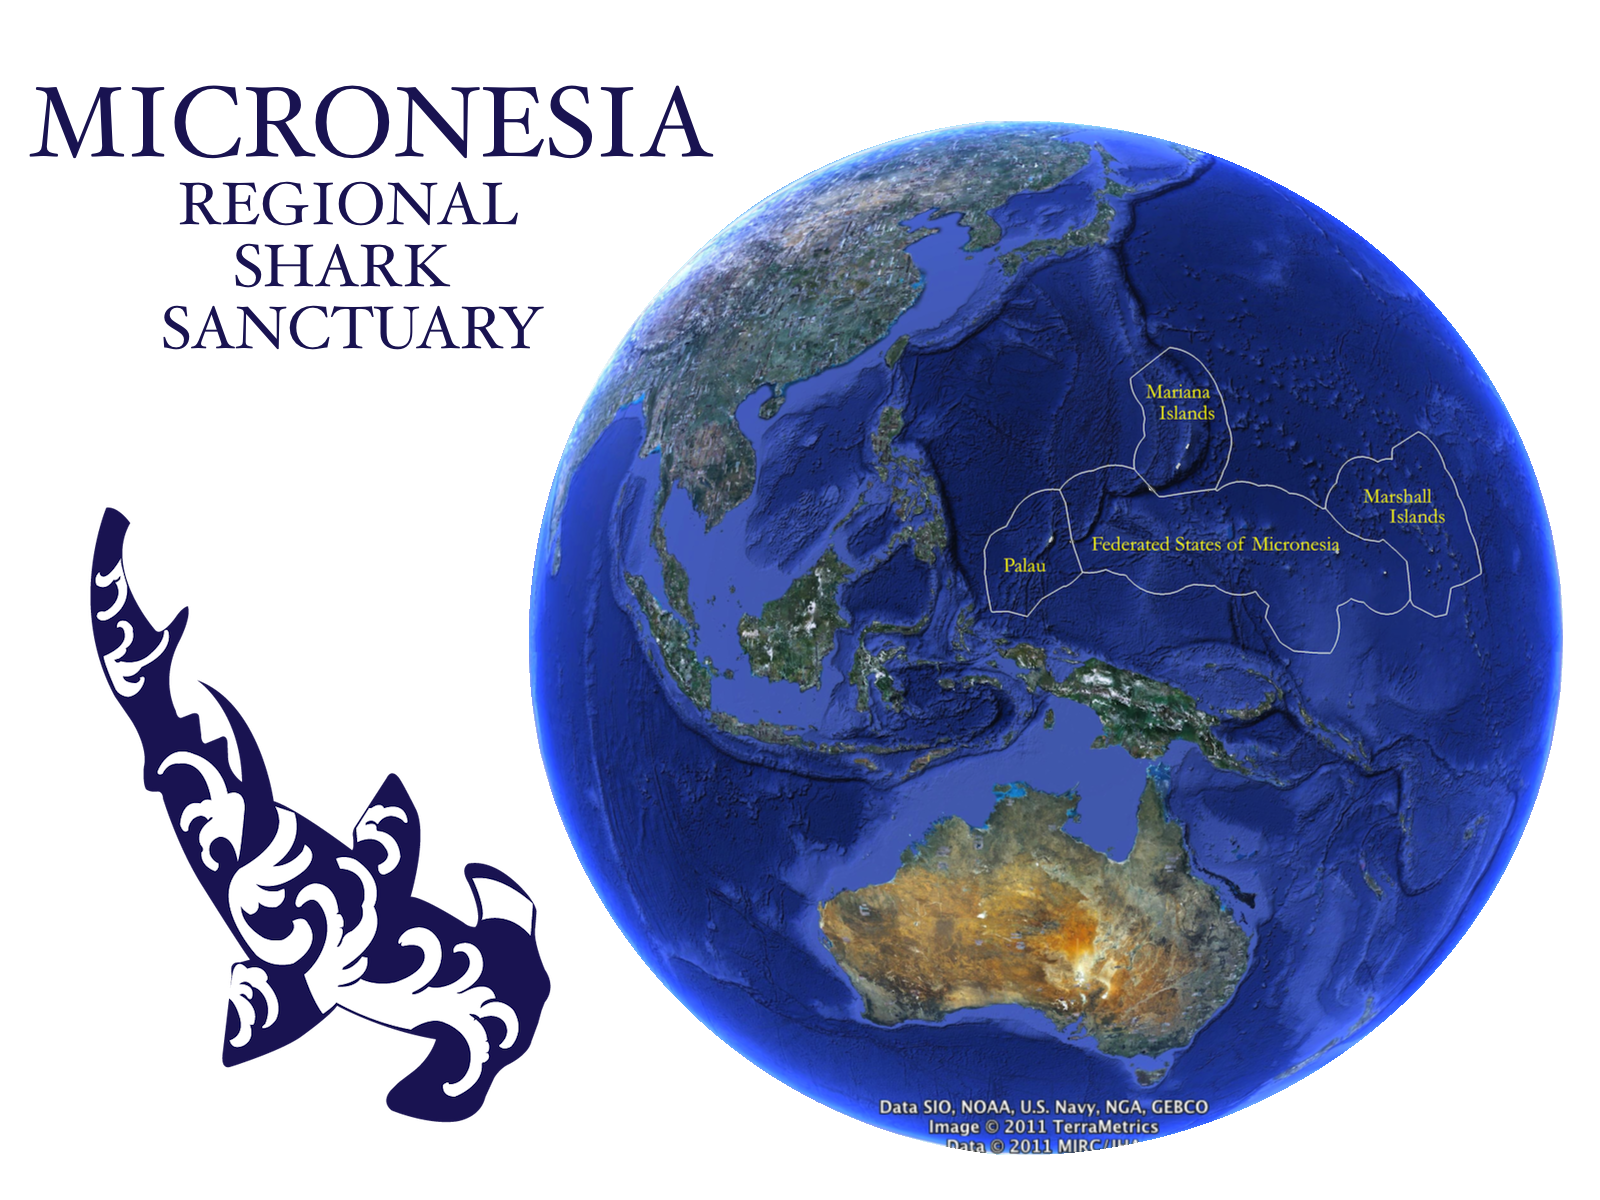 Micronesia Regional Shark Sanctuary